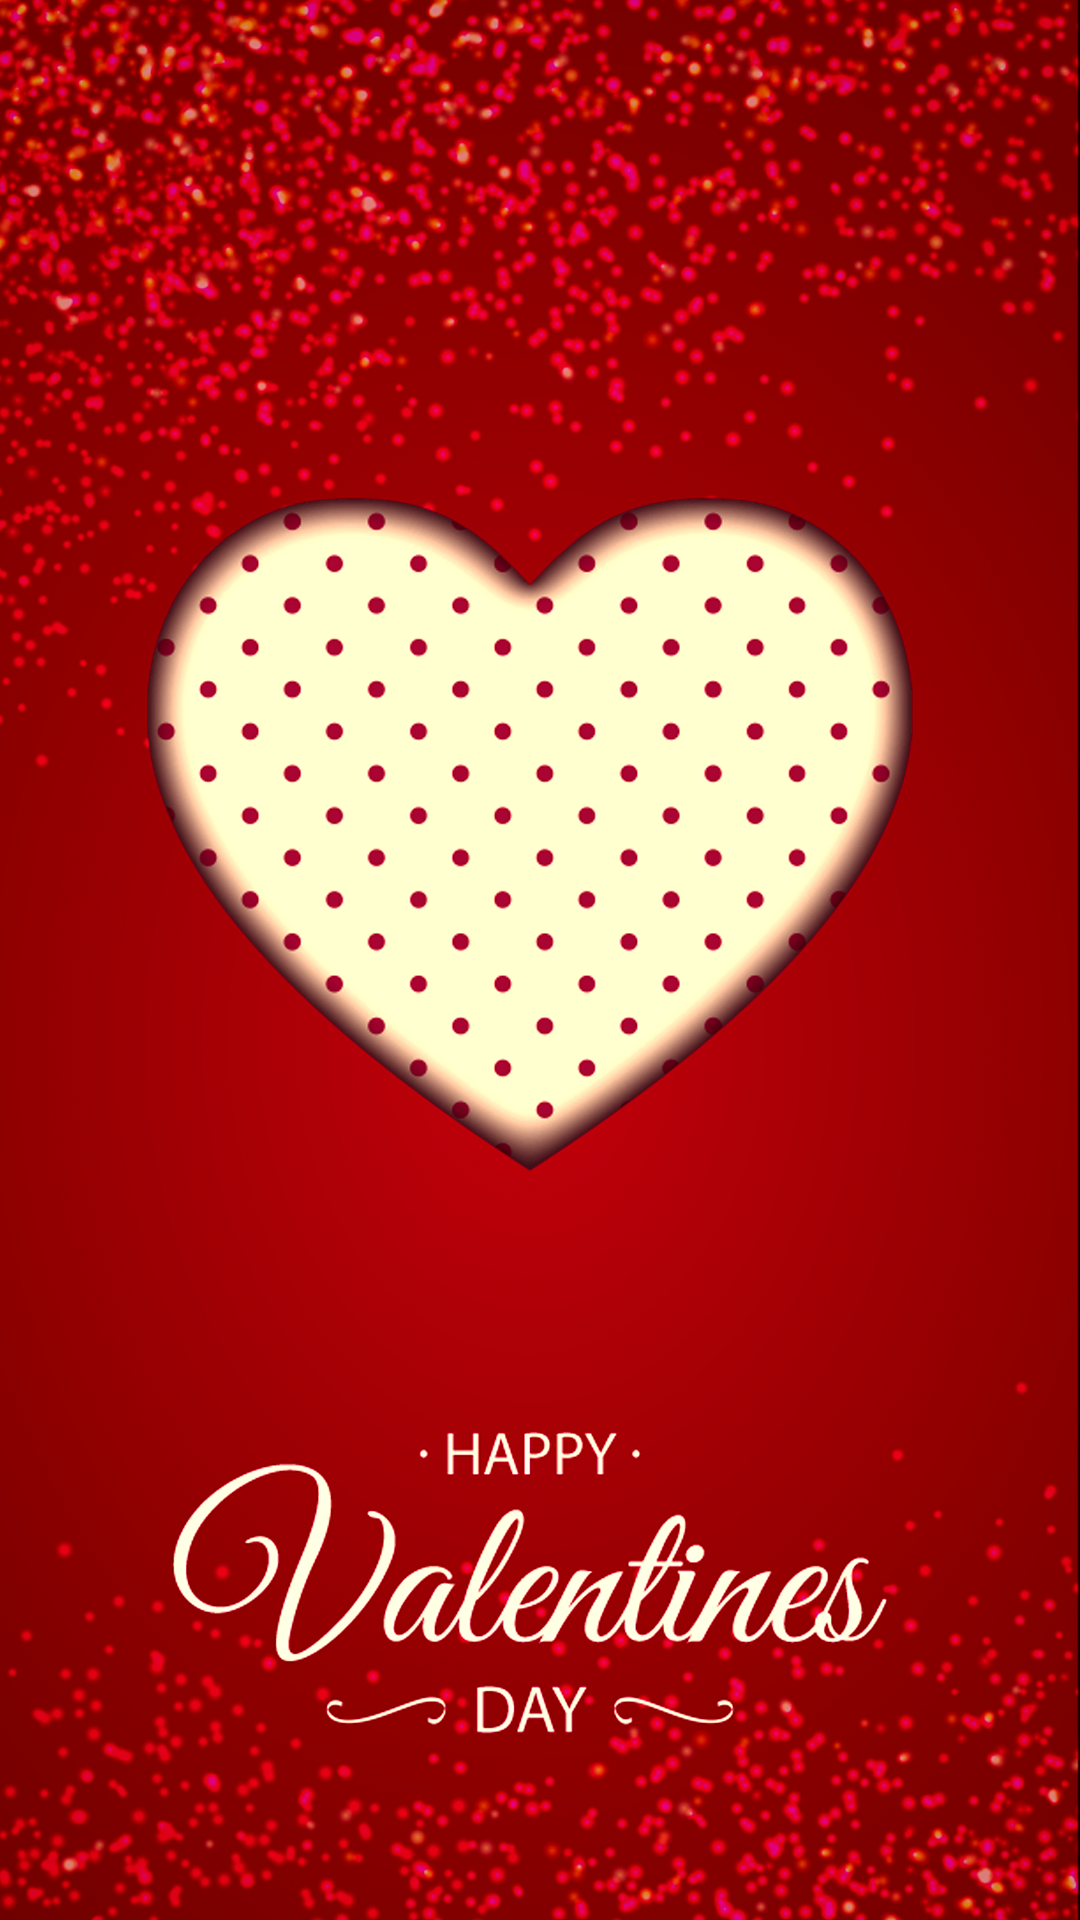 free hd happy valentines day iphone wallpaper for download 0412